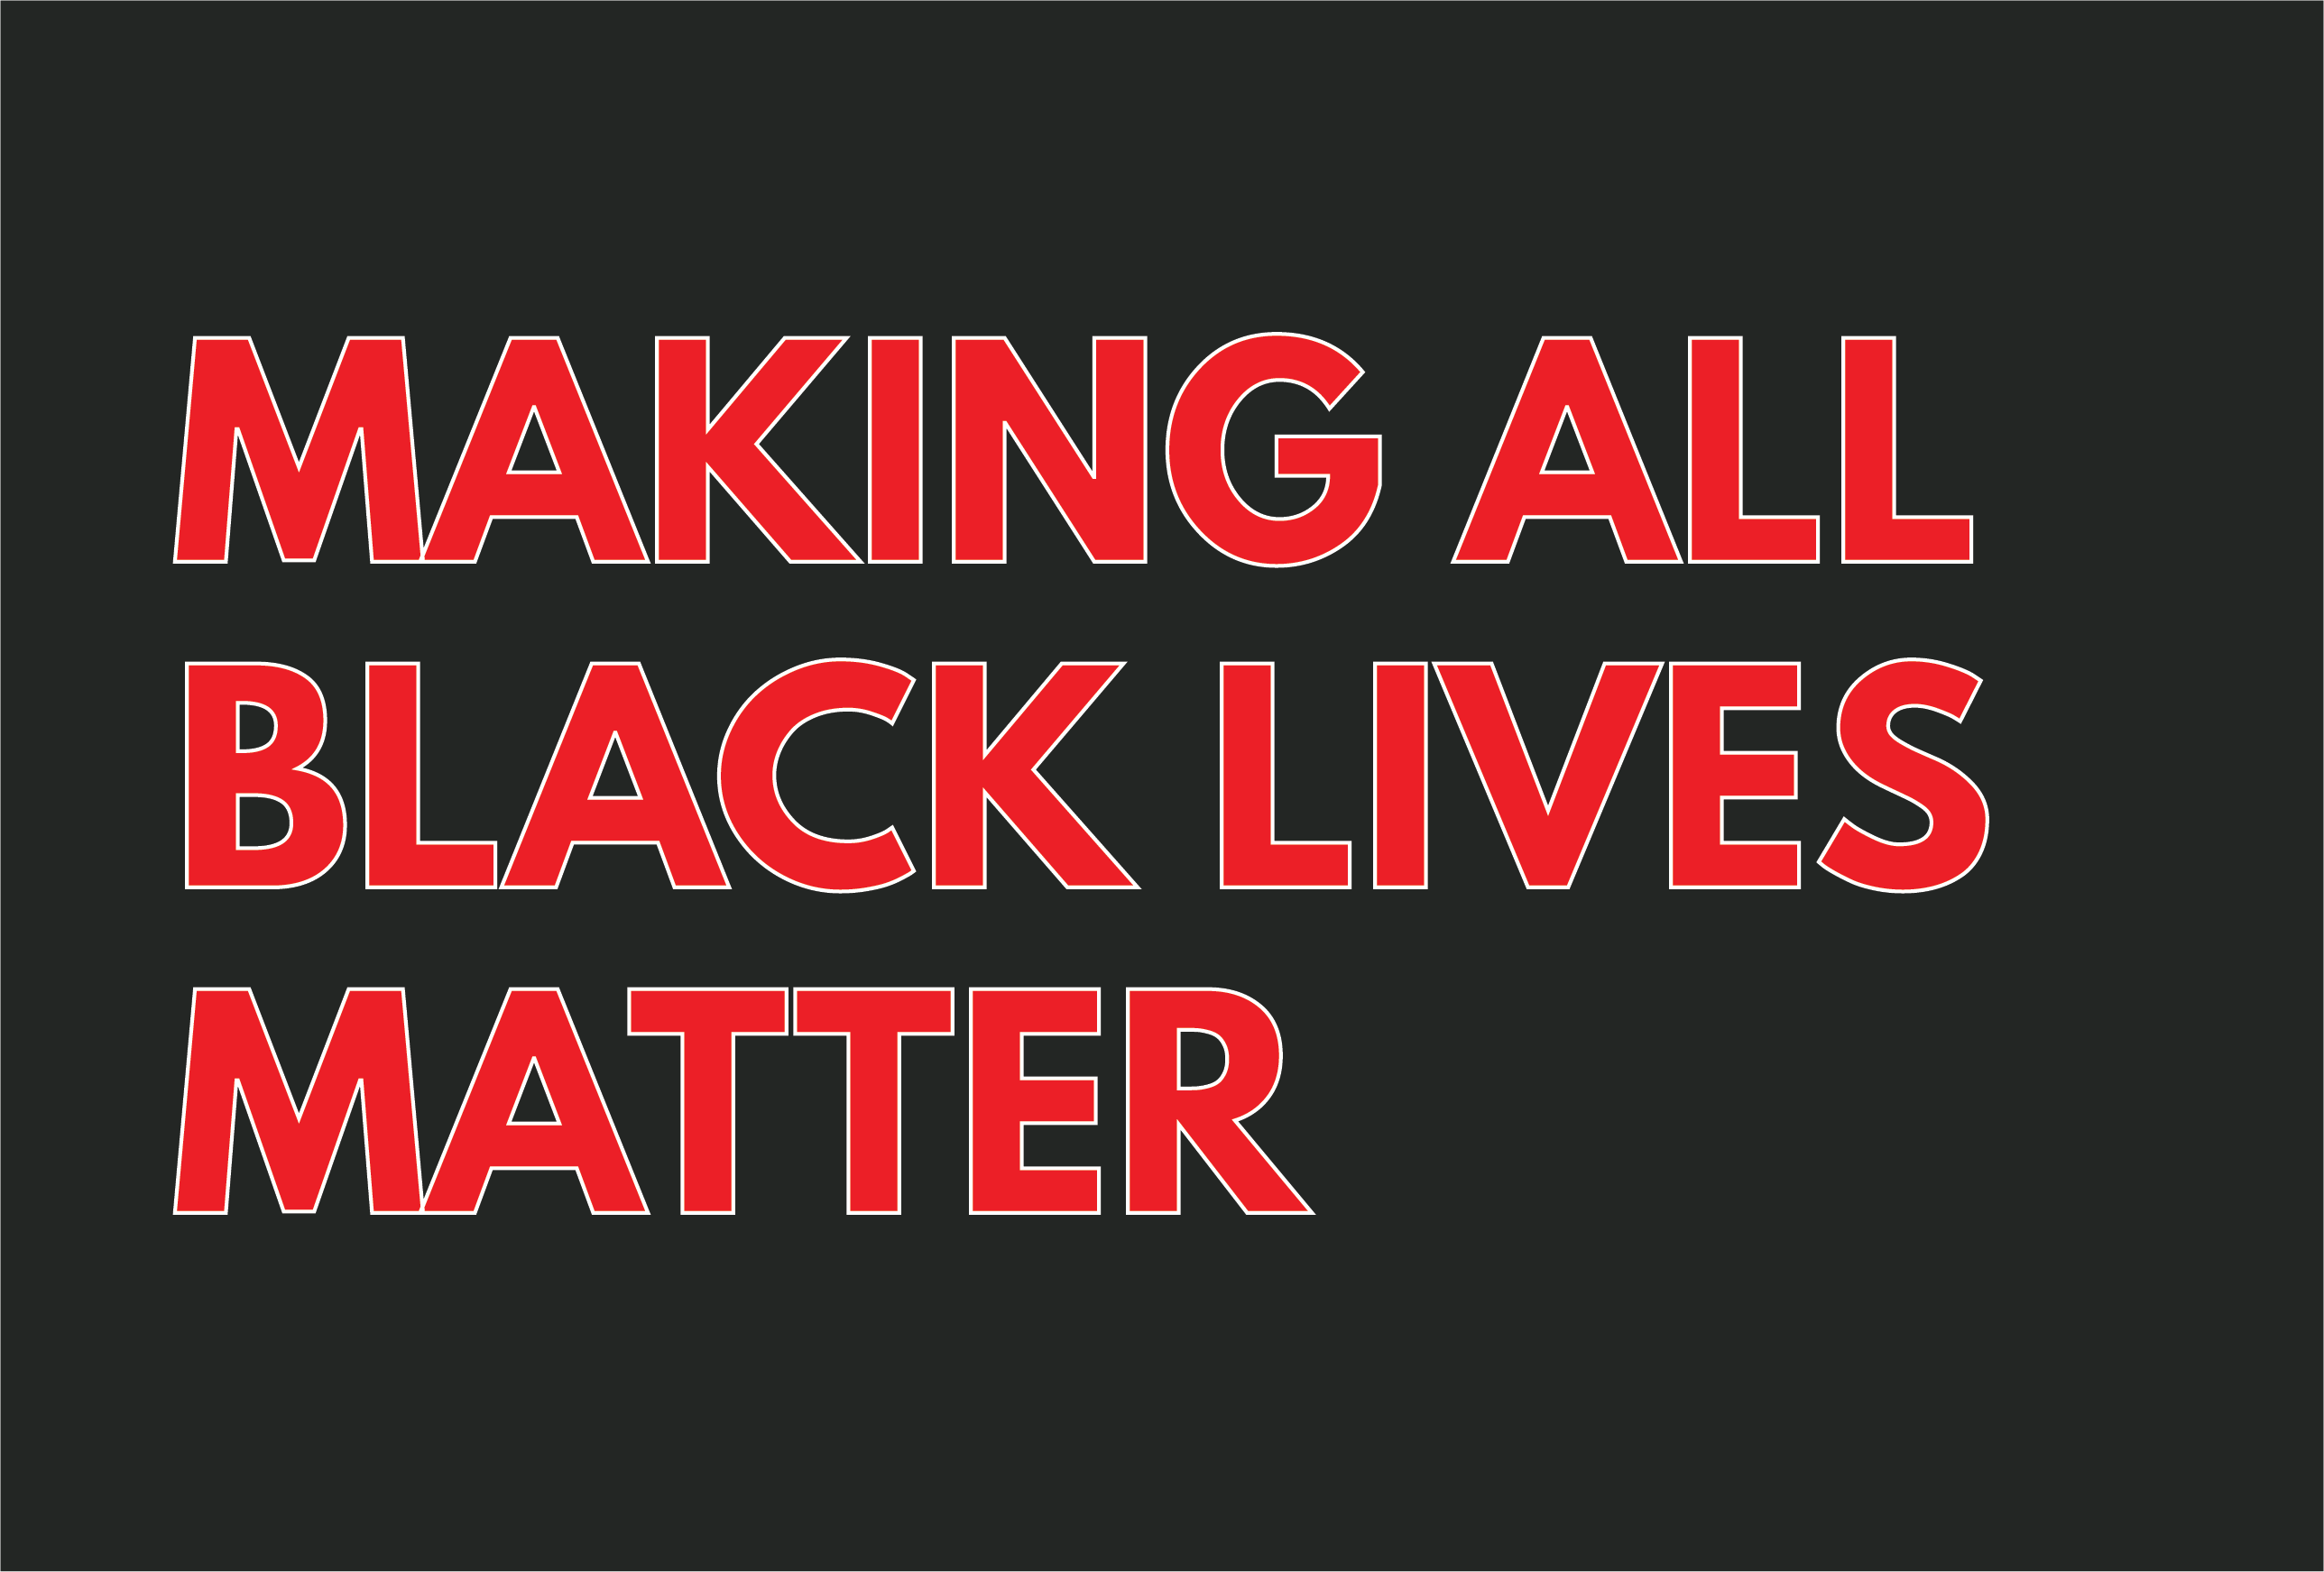 Making All Black Lives Matter